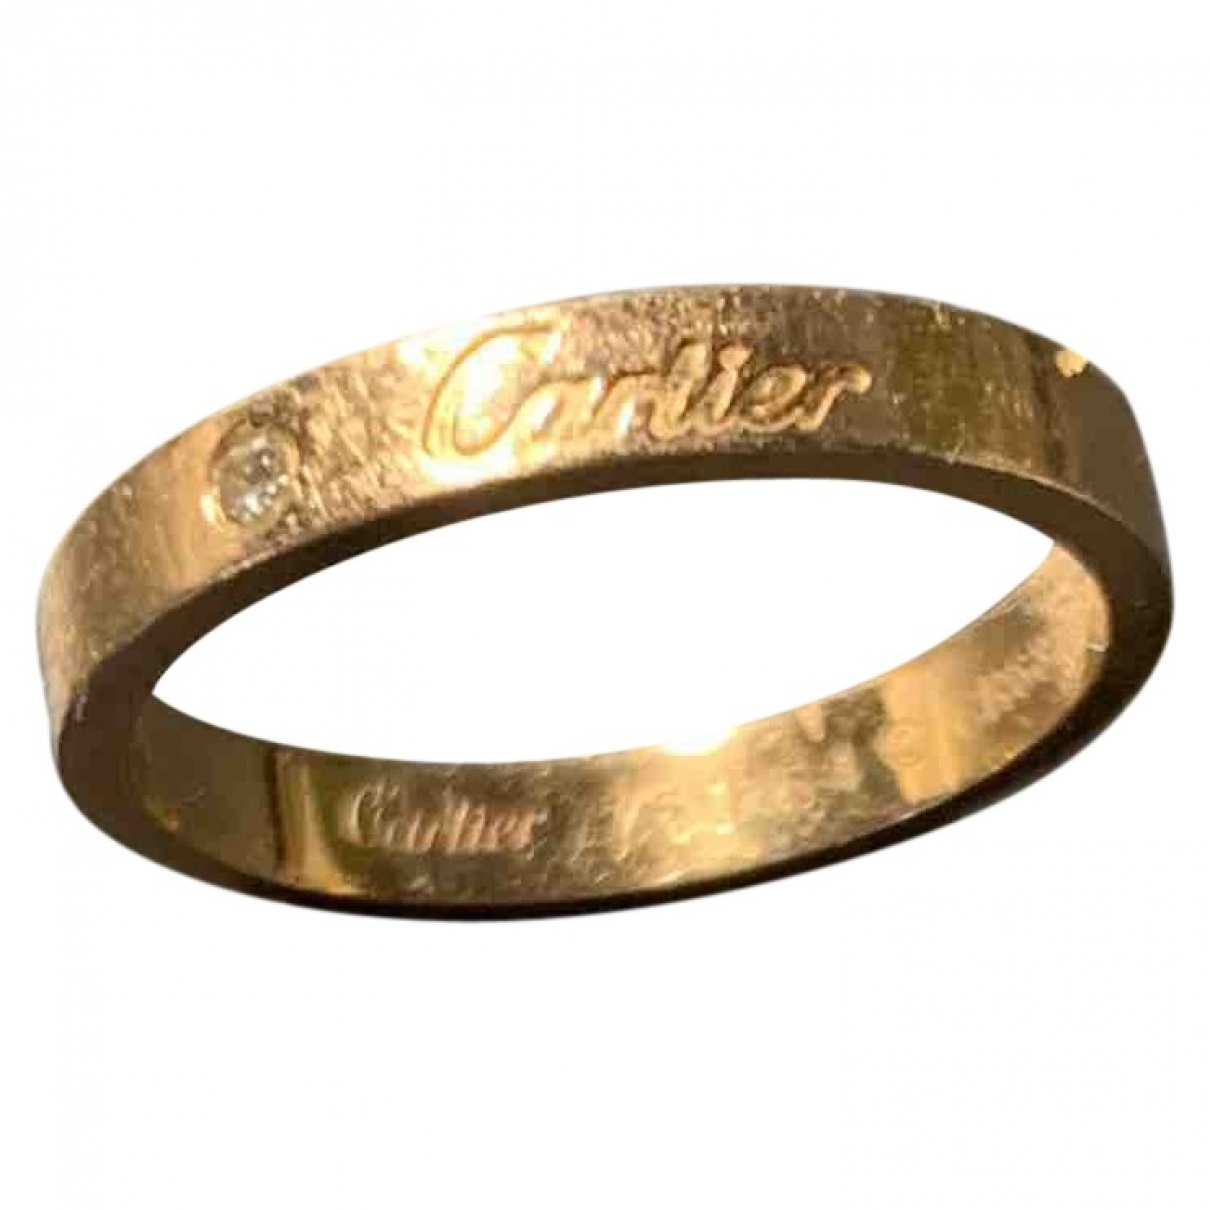 Cartier C Pink Pink gold ring for Women 54 MM